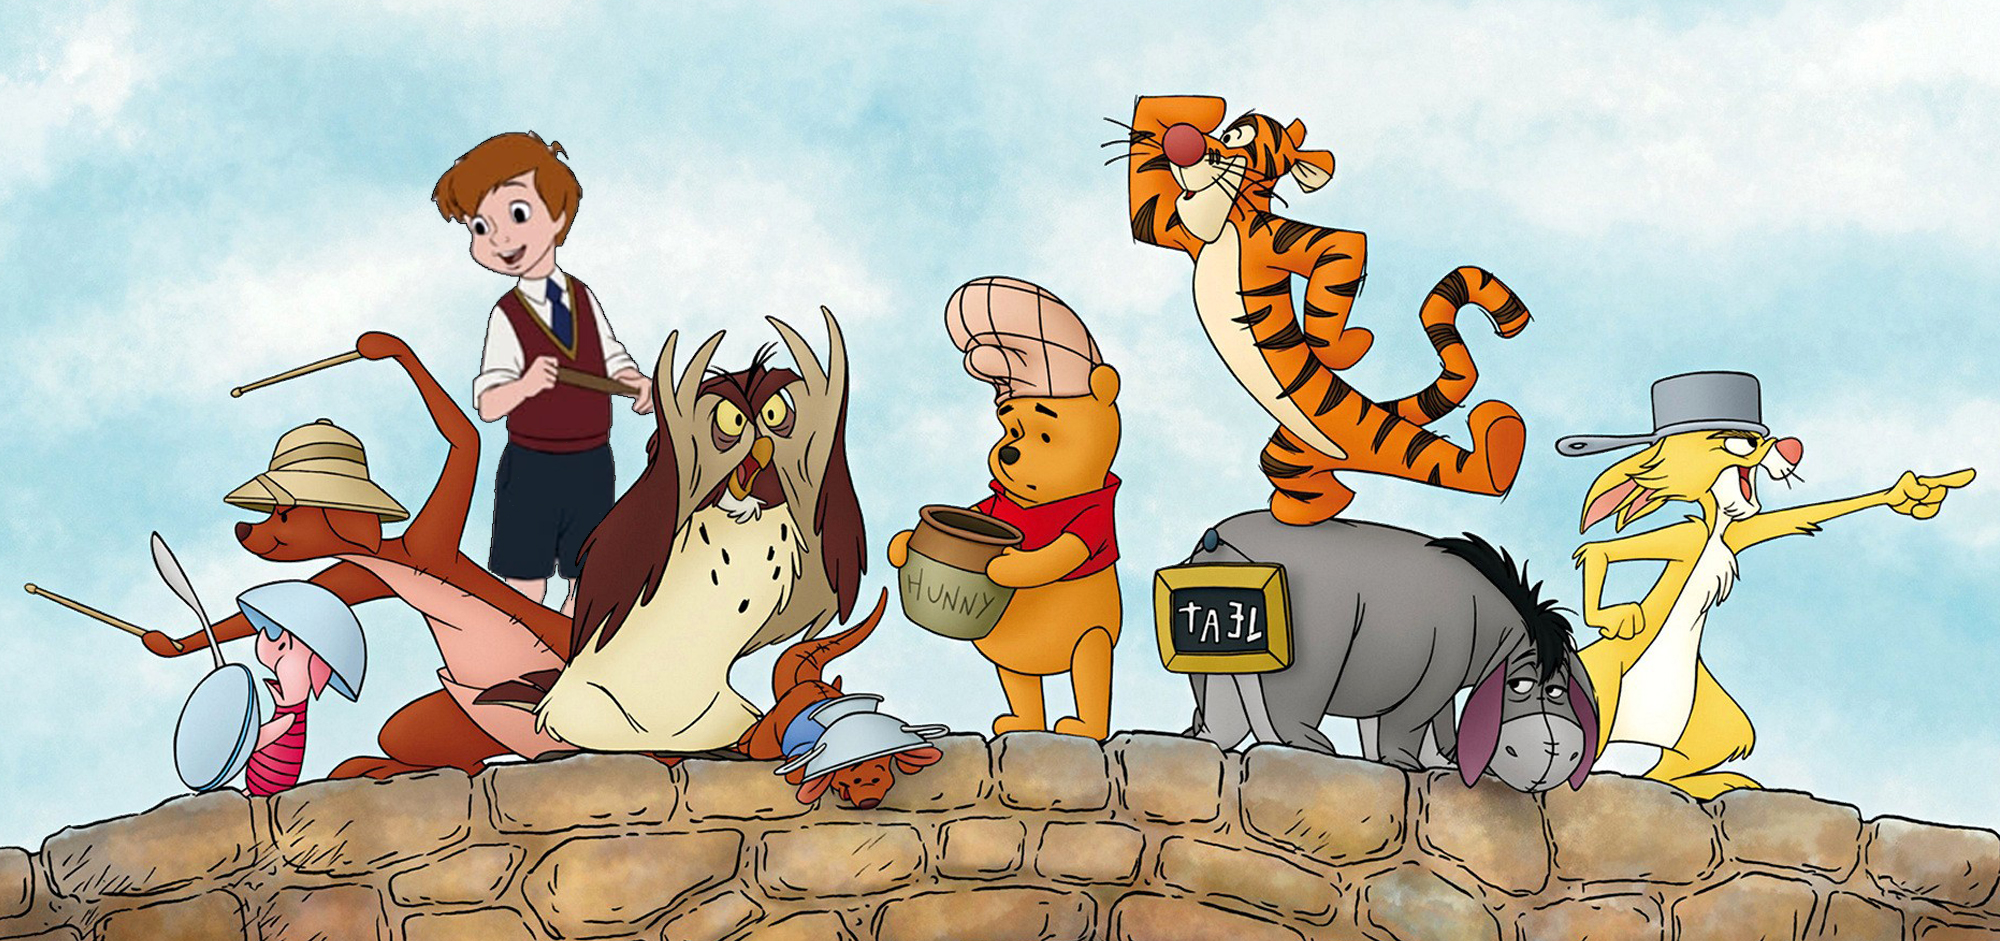 Will Ryan Tigger Most Pooh